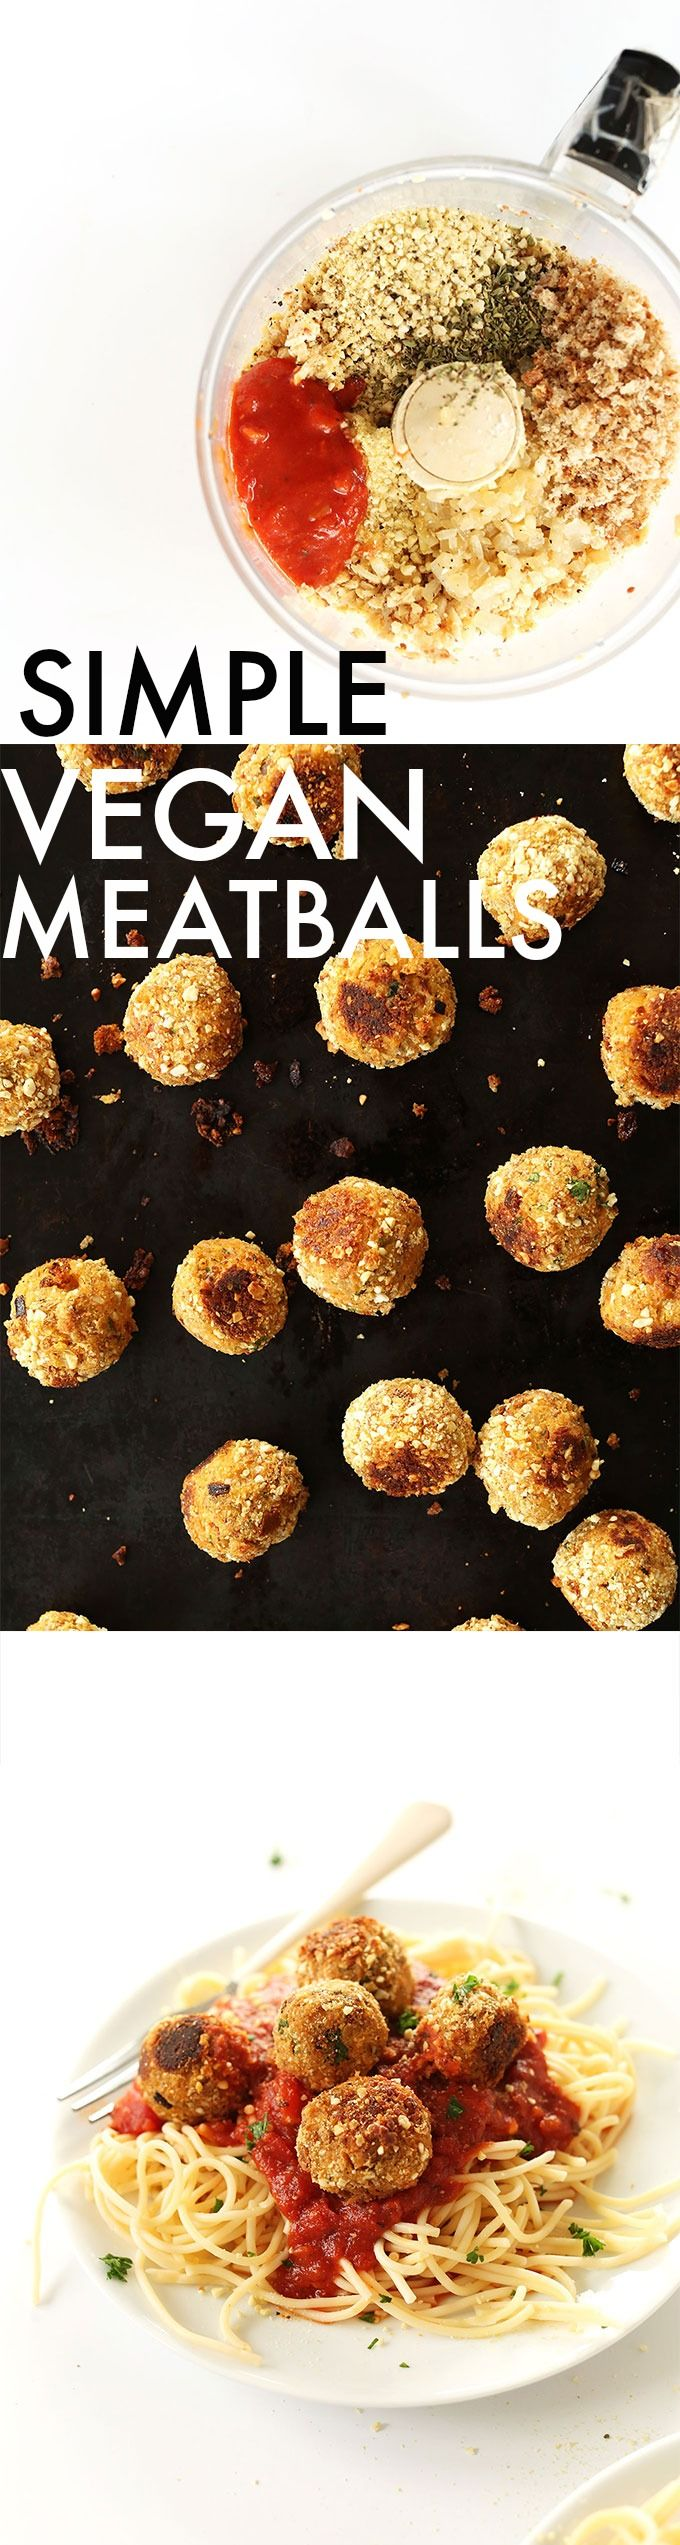 10 INGREDIENT Vegan Meatballs! Tempeh based, healthy, simple and entirely #VEGAN